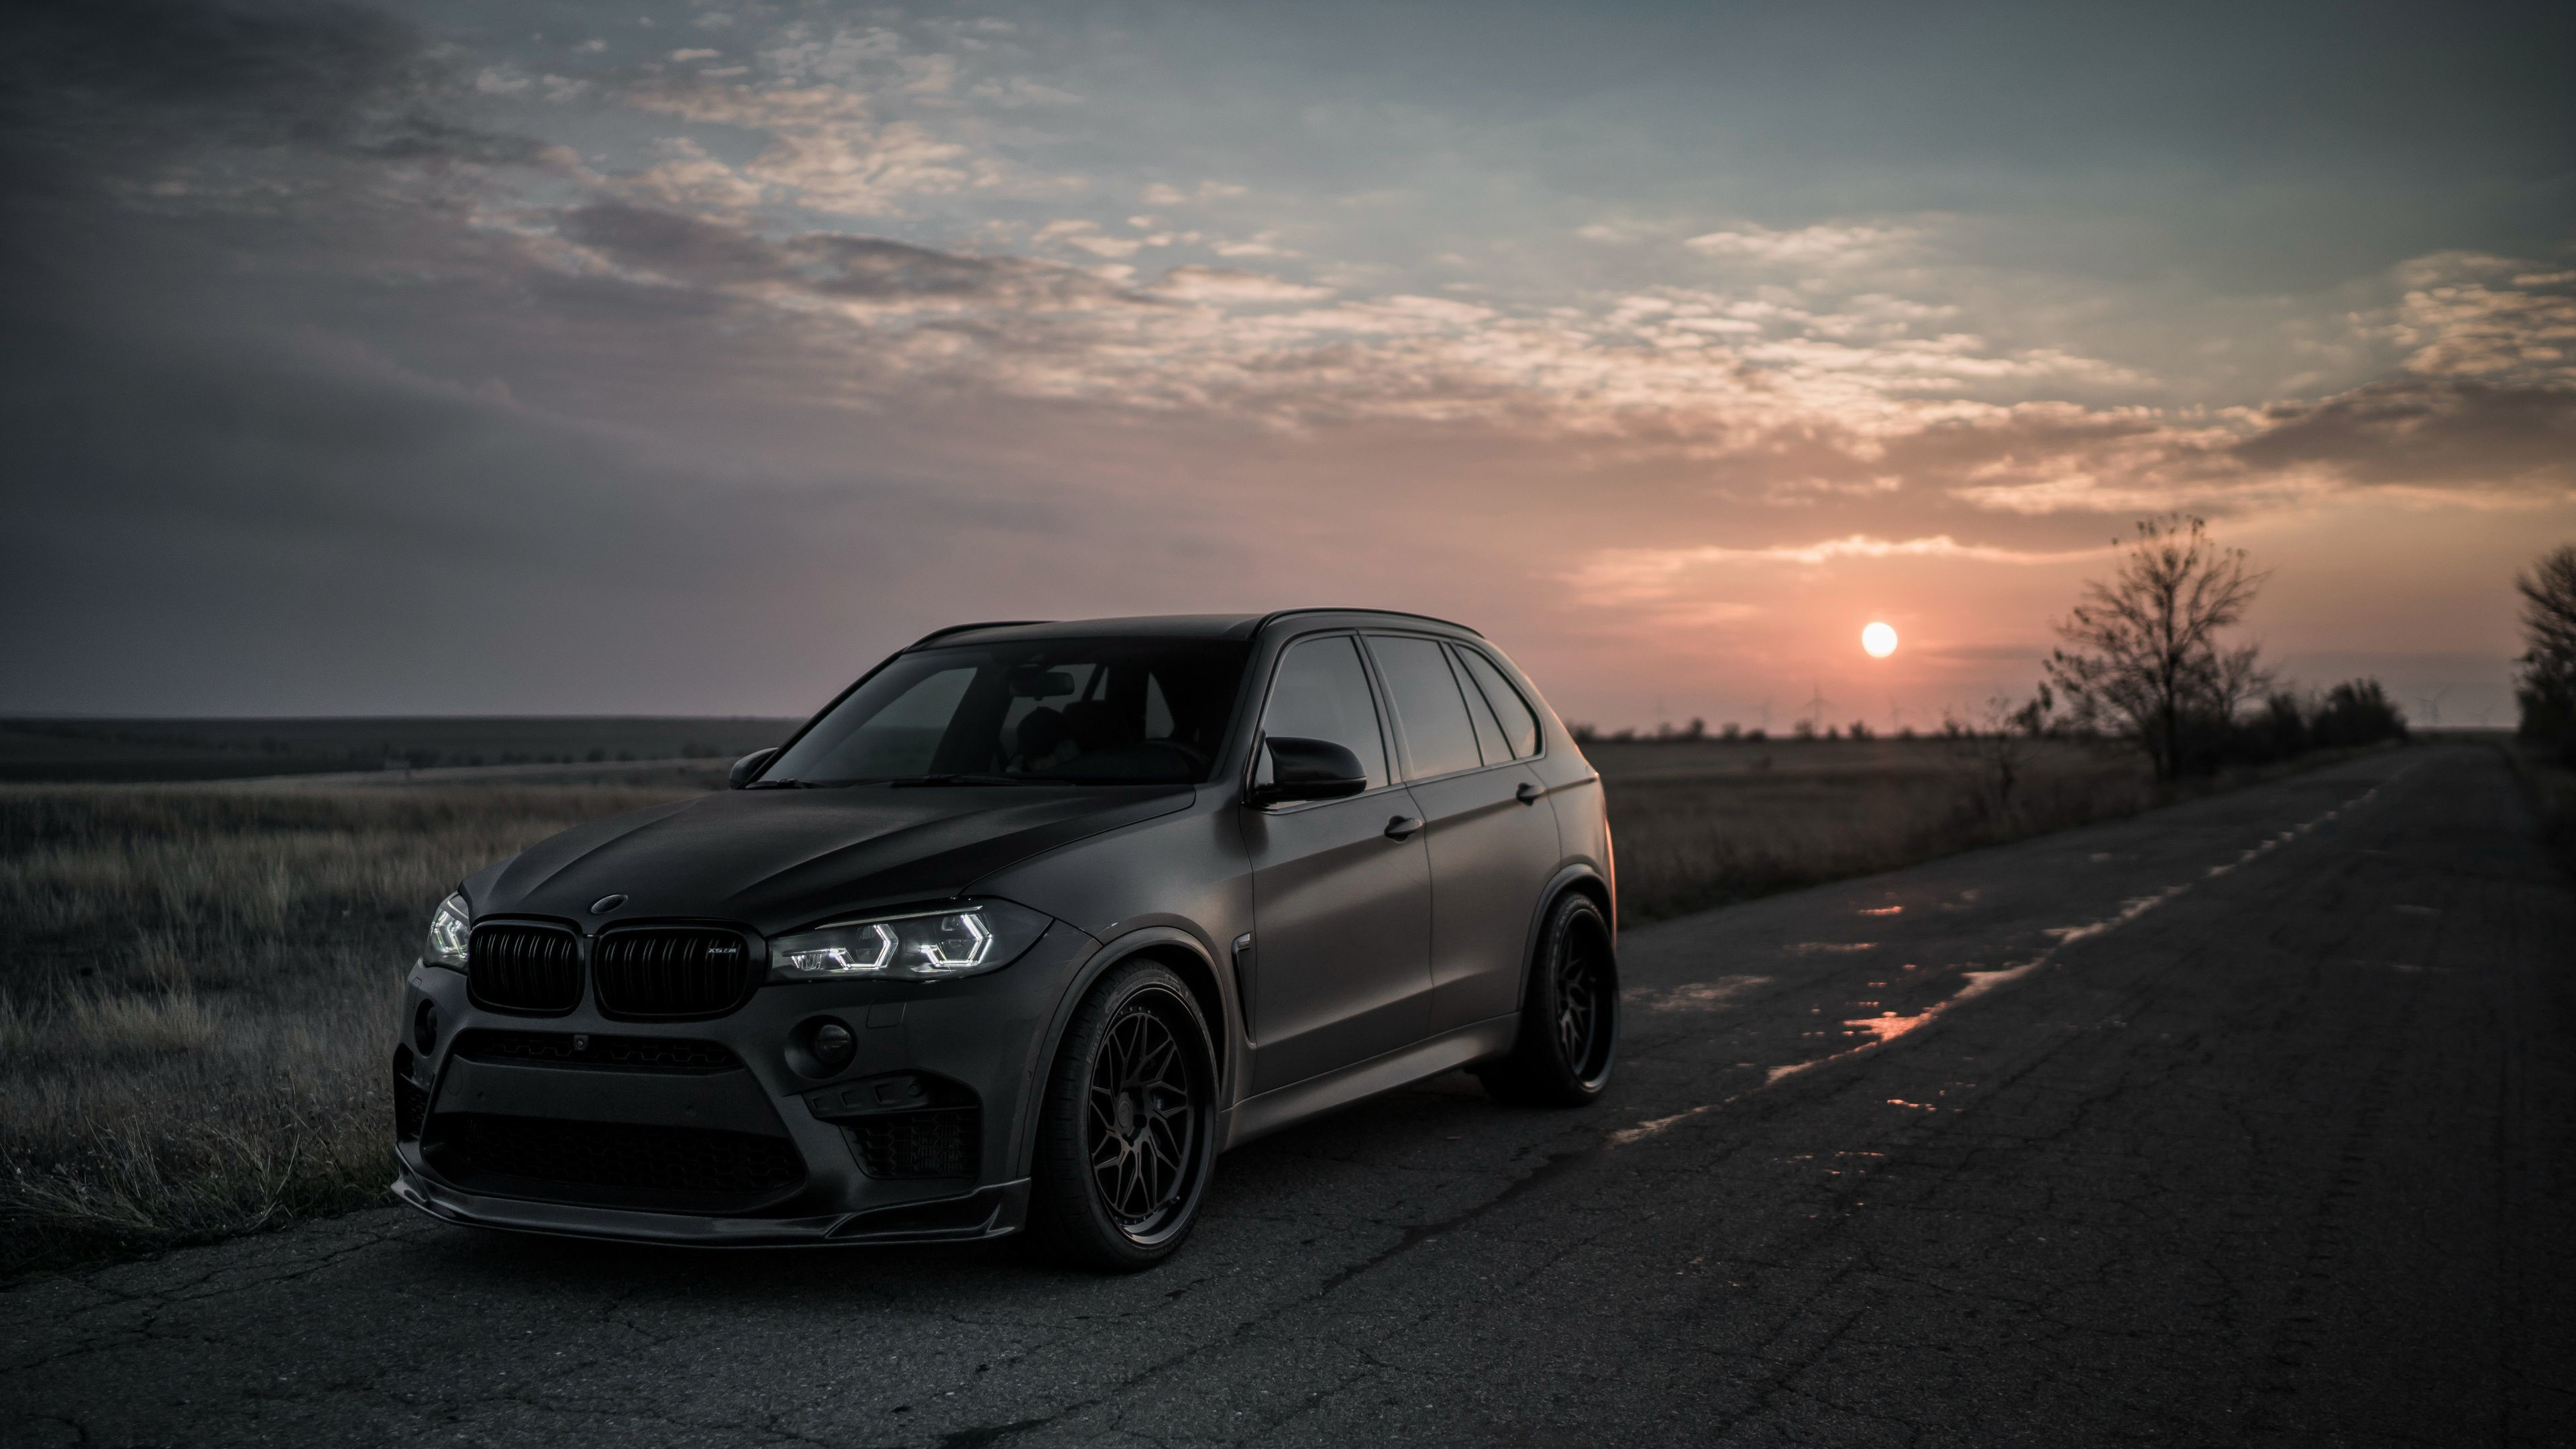 Res: 3840x2160, Z Performance BMW X5 4k hd-wallpapers, cars wallpapers, bmw x5 wallpapers, bmw  wallpapers, 4k-wallpapers, 2018 cars wallpapers